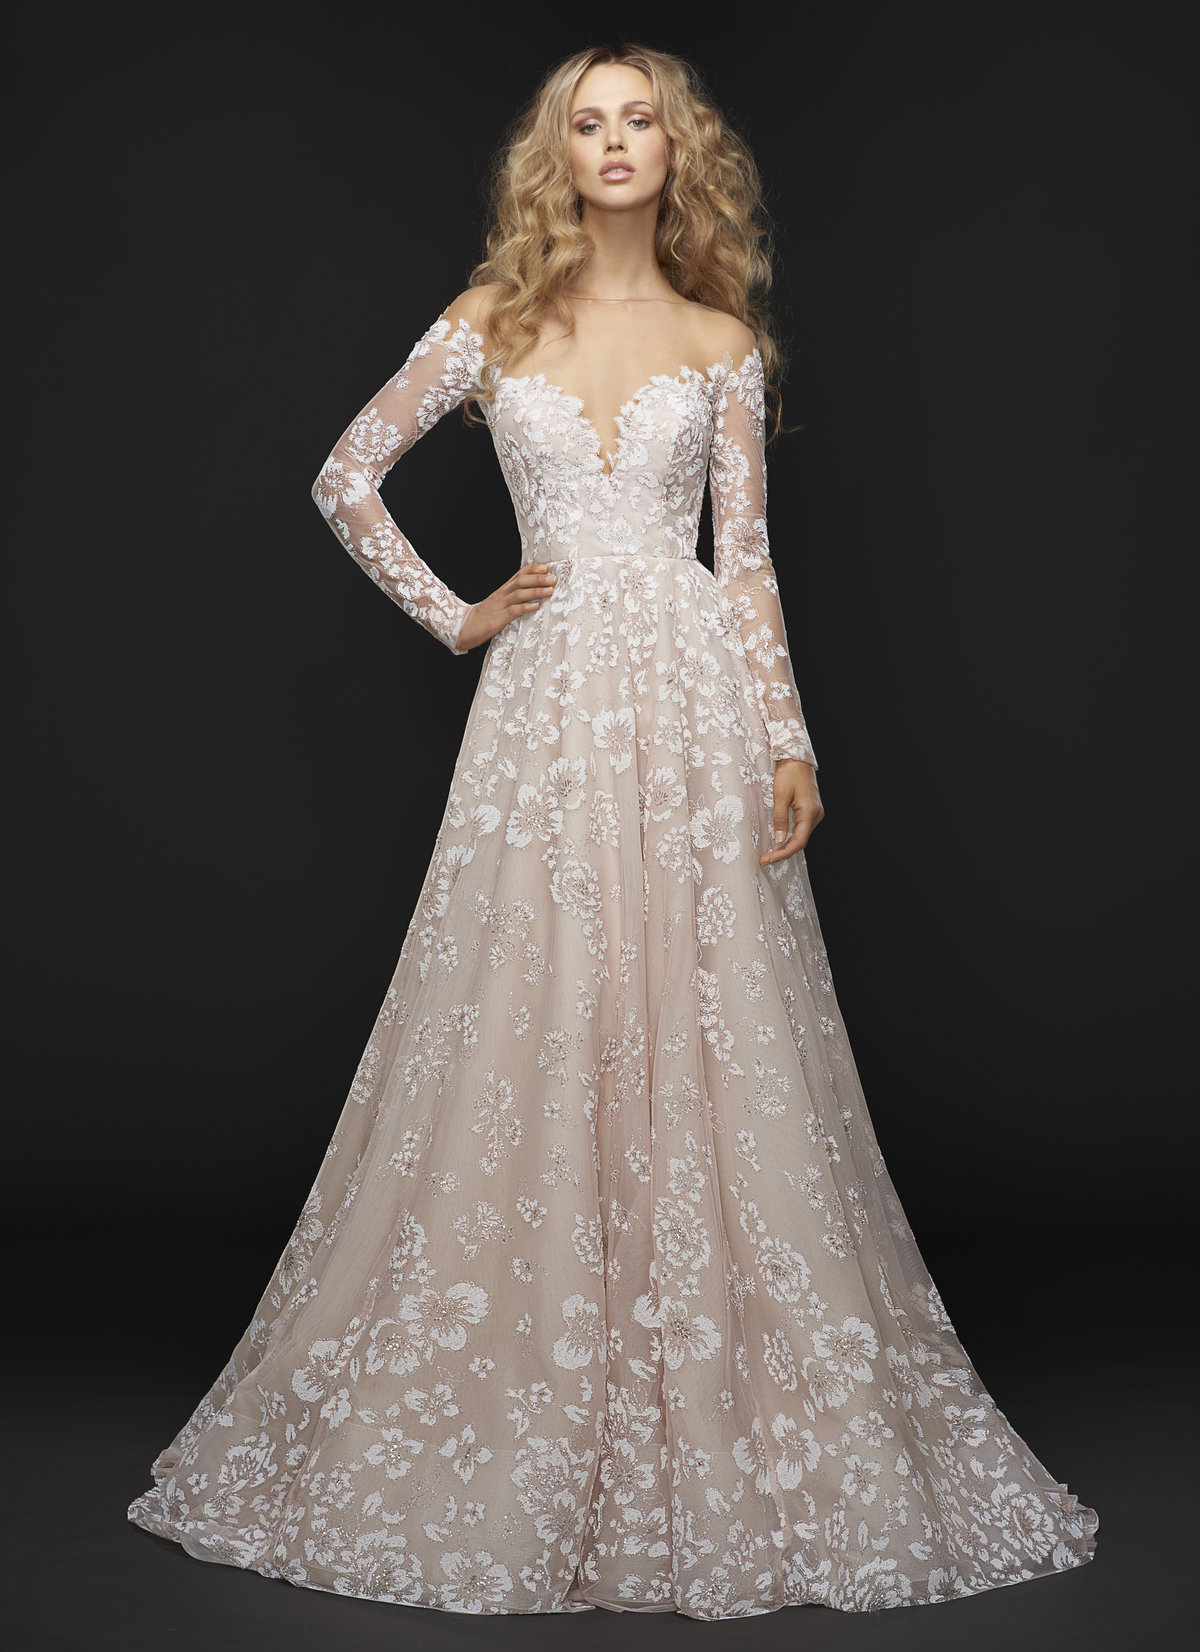 Bridal Gowns and Wedding Dresses by JLM Couture